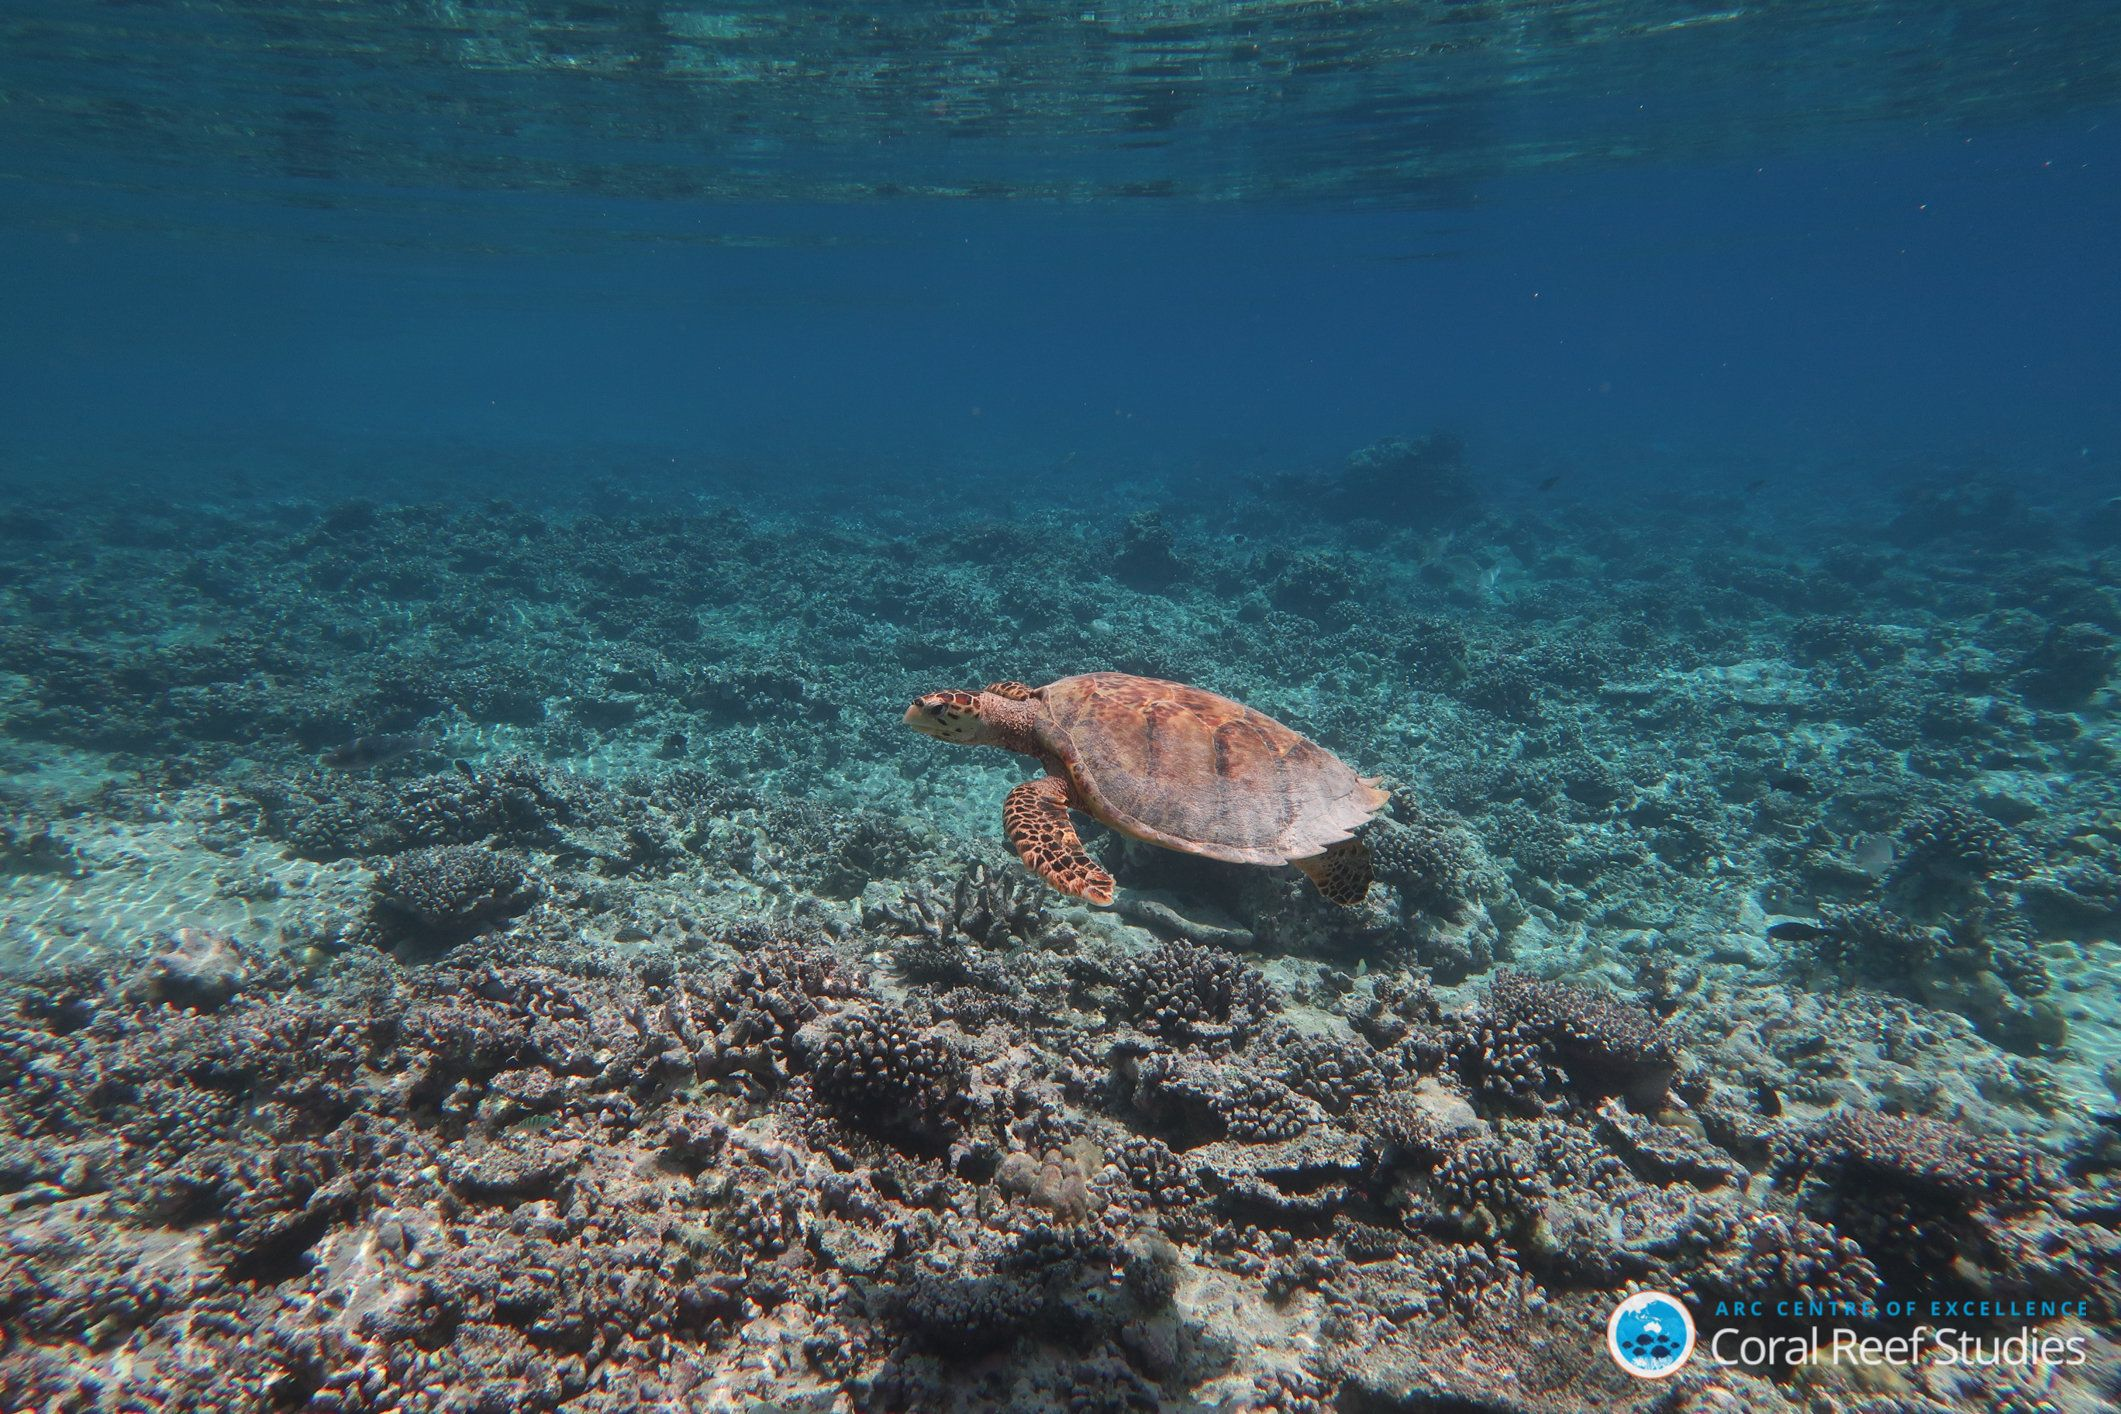 A turtle swimming over a reef destroyed by the 2016 bleaching event.